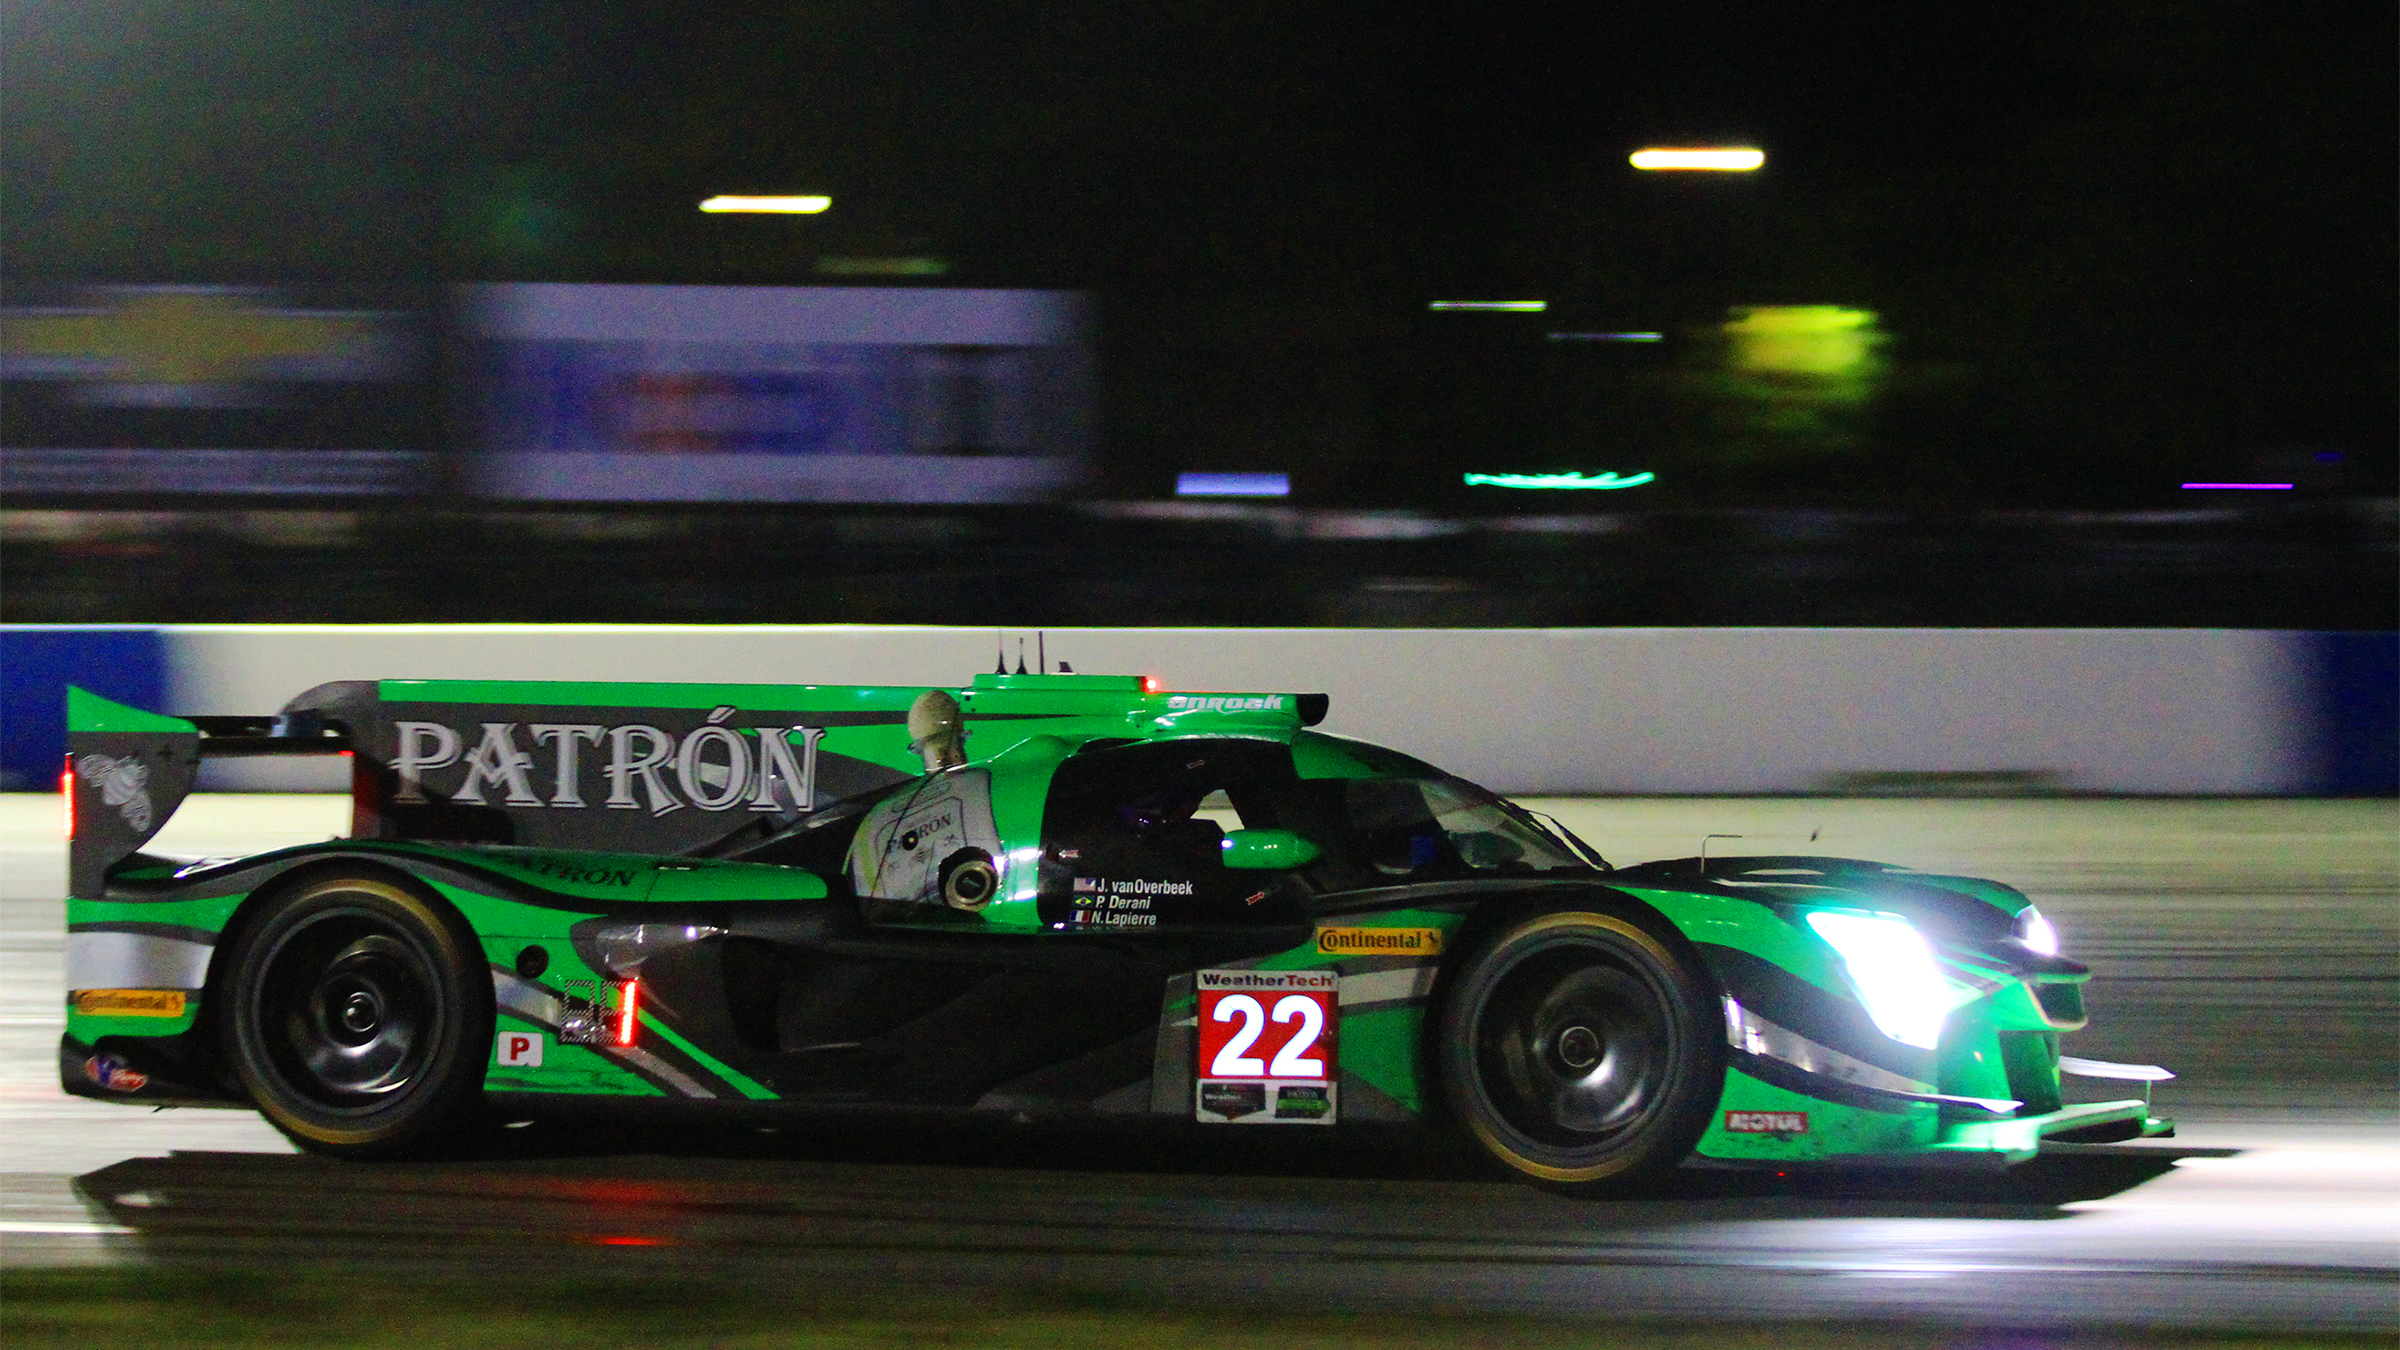 Pipo Derani In The 22 Extreme Sd Motorsports Nissan Dpi Leads Final Few Laps